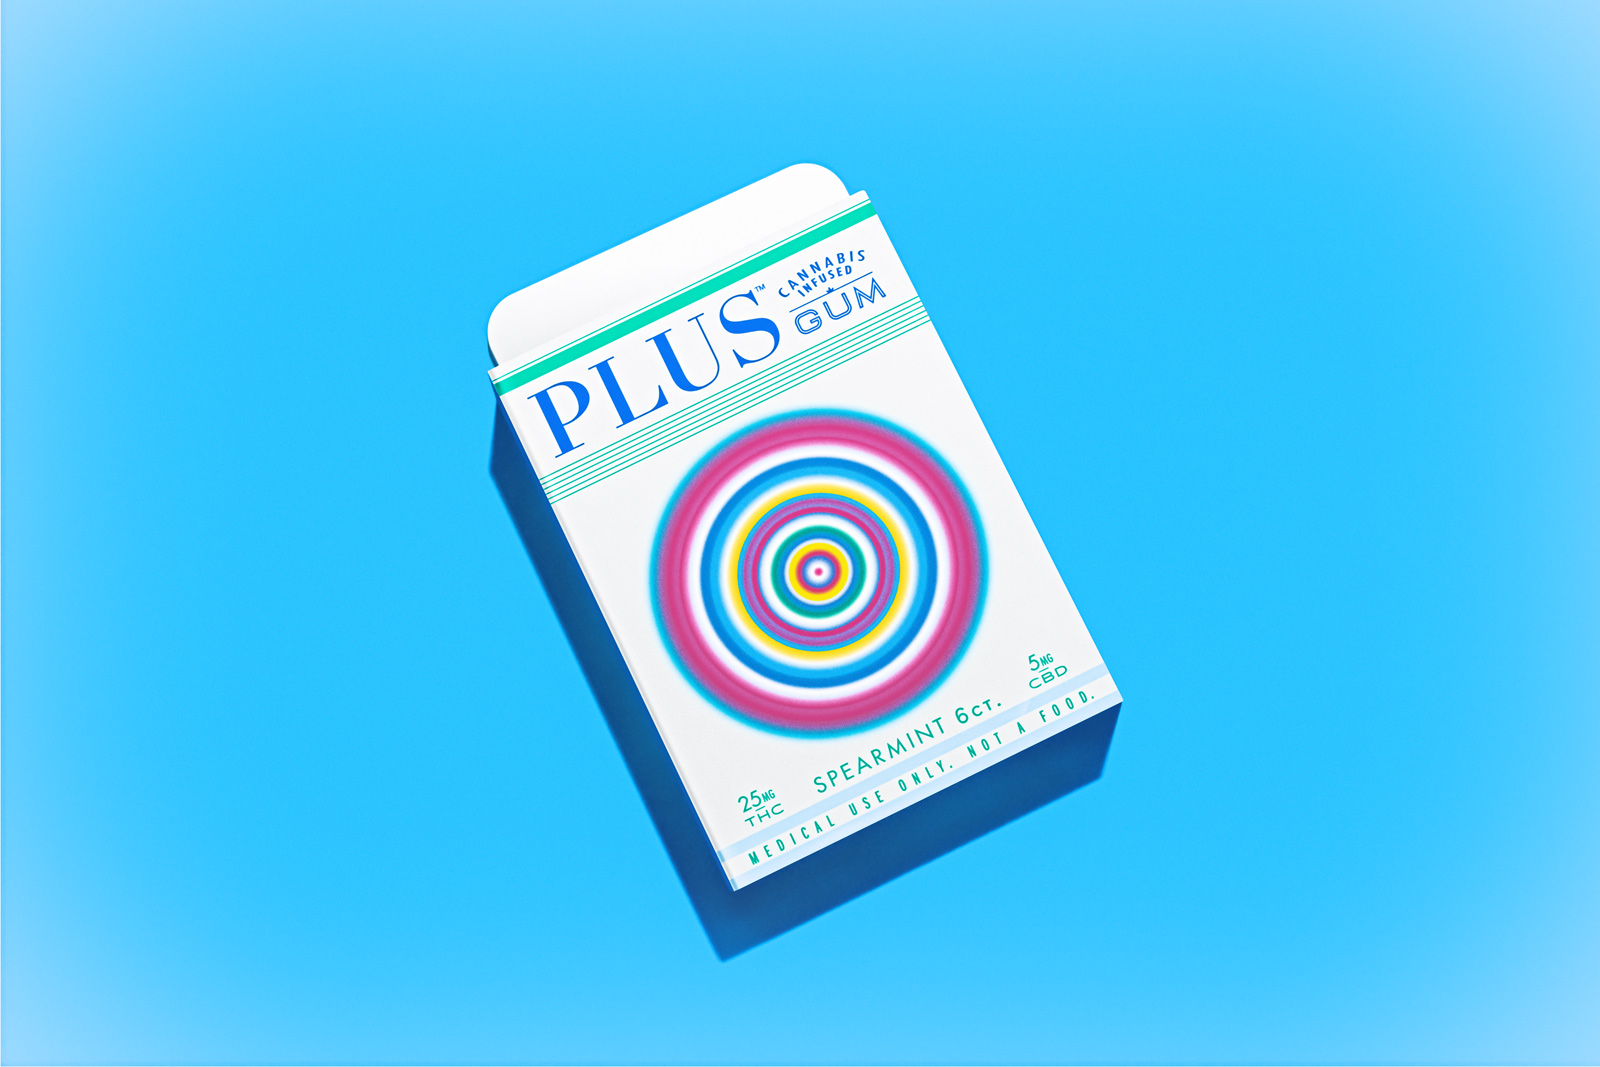 phillip fivel nessen Plus Gum marijuana product design